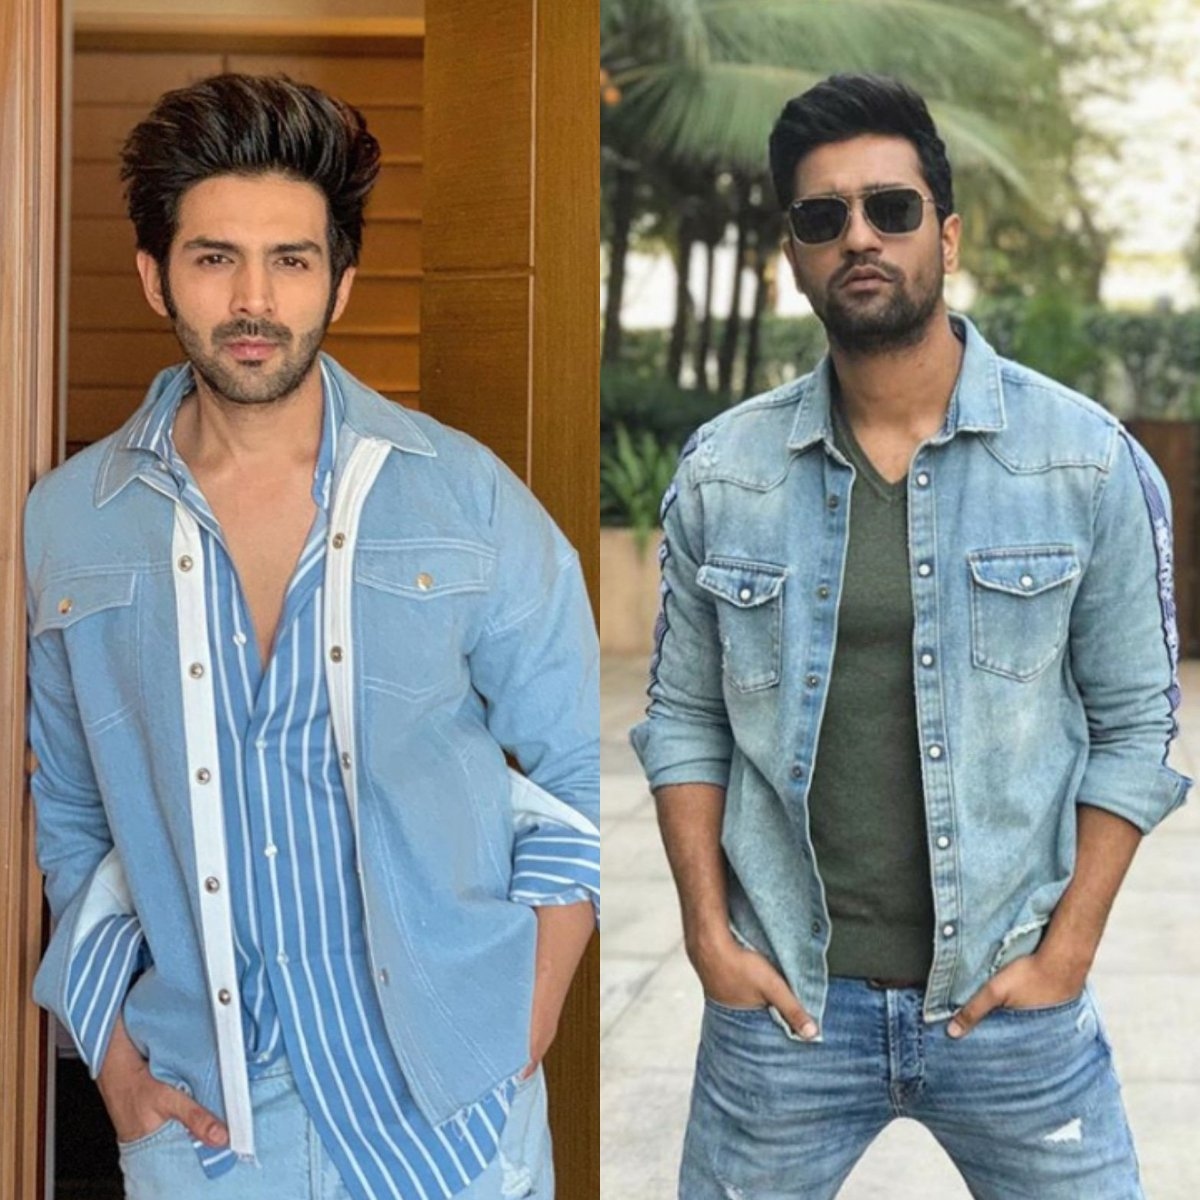 @TheAaryanKartik and @vickykaushal09 look effortlessly hot while casual in denim on denim.🔥💯 But who wore it better? Comment either 1 or 2.   #ErosNow | #VickyKaushal | #KartikAaryan |#Bollywood | #BollywoodActor | #DenimOnDenim